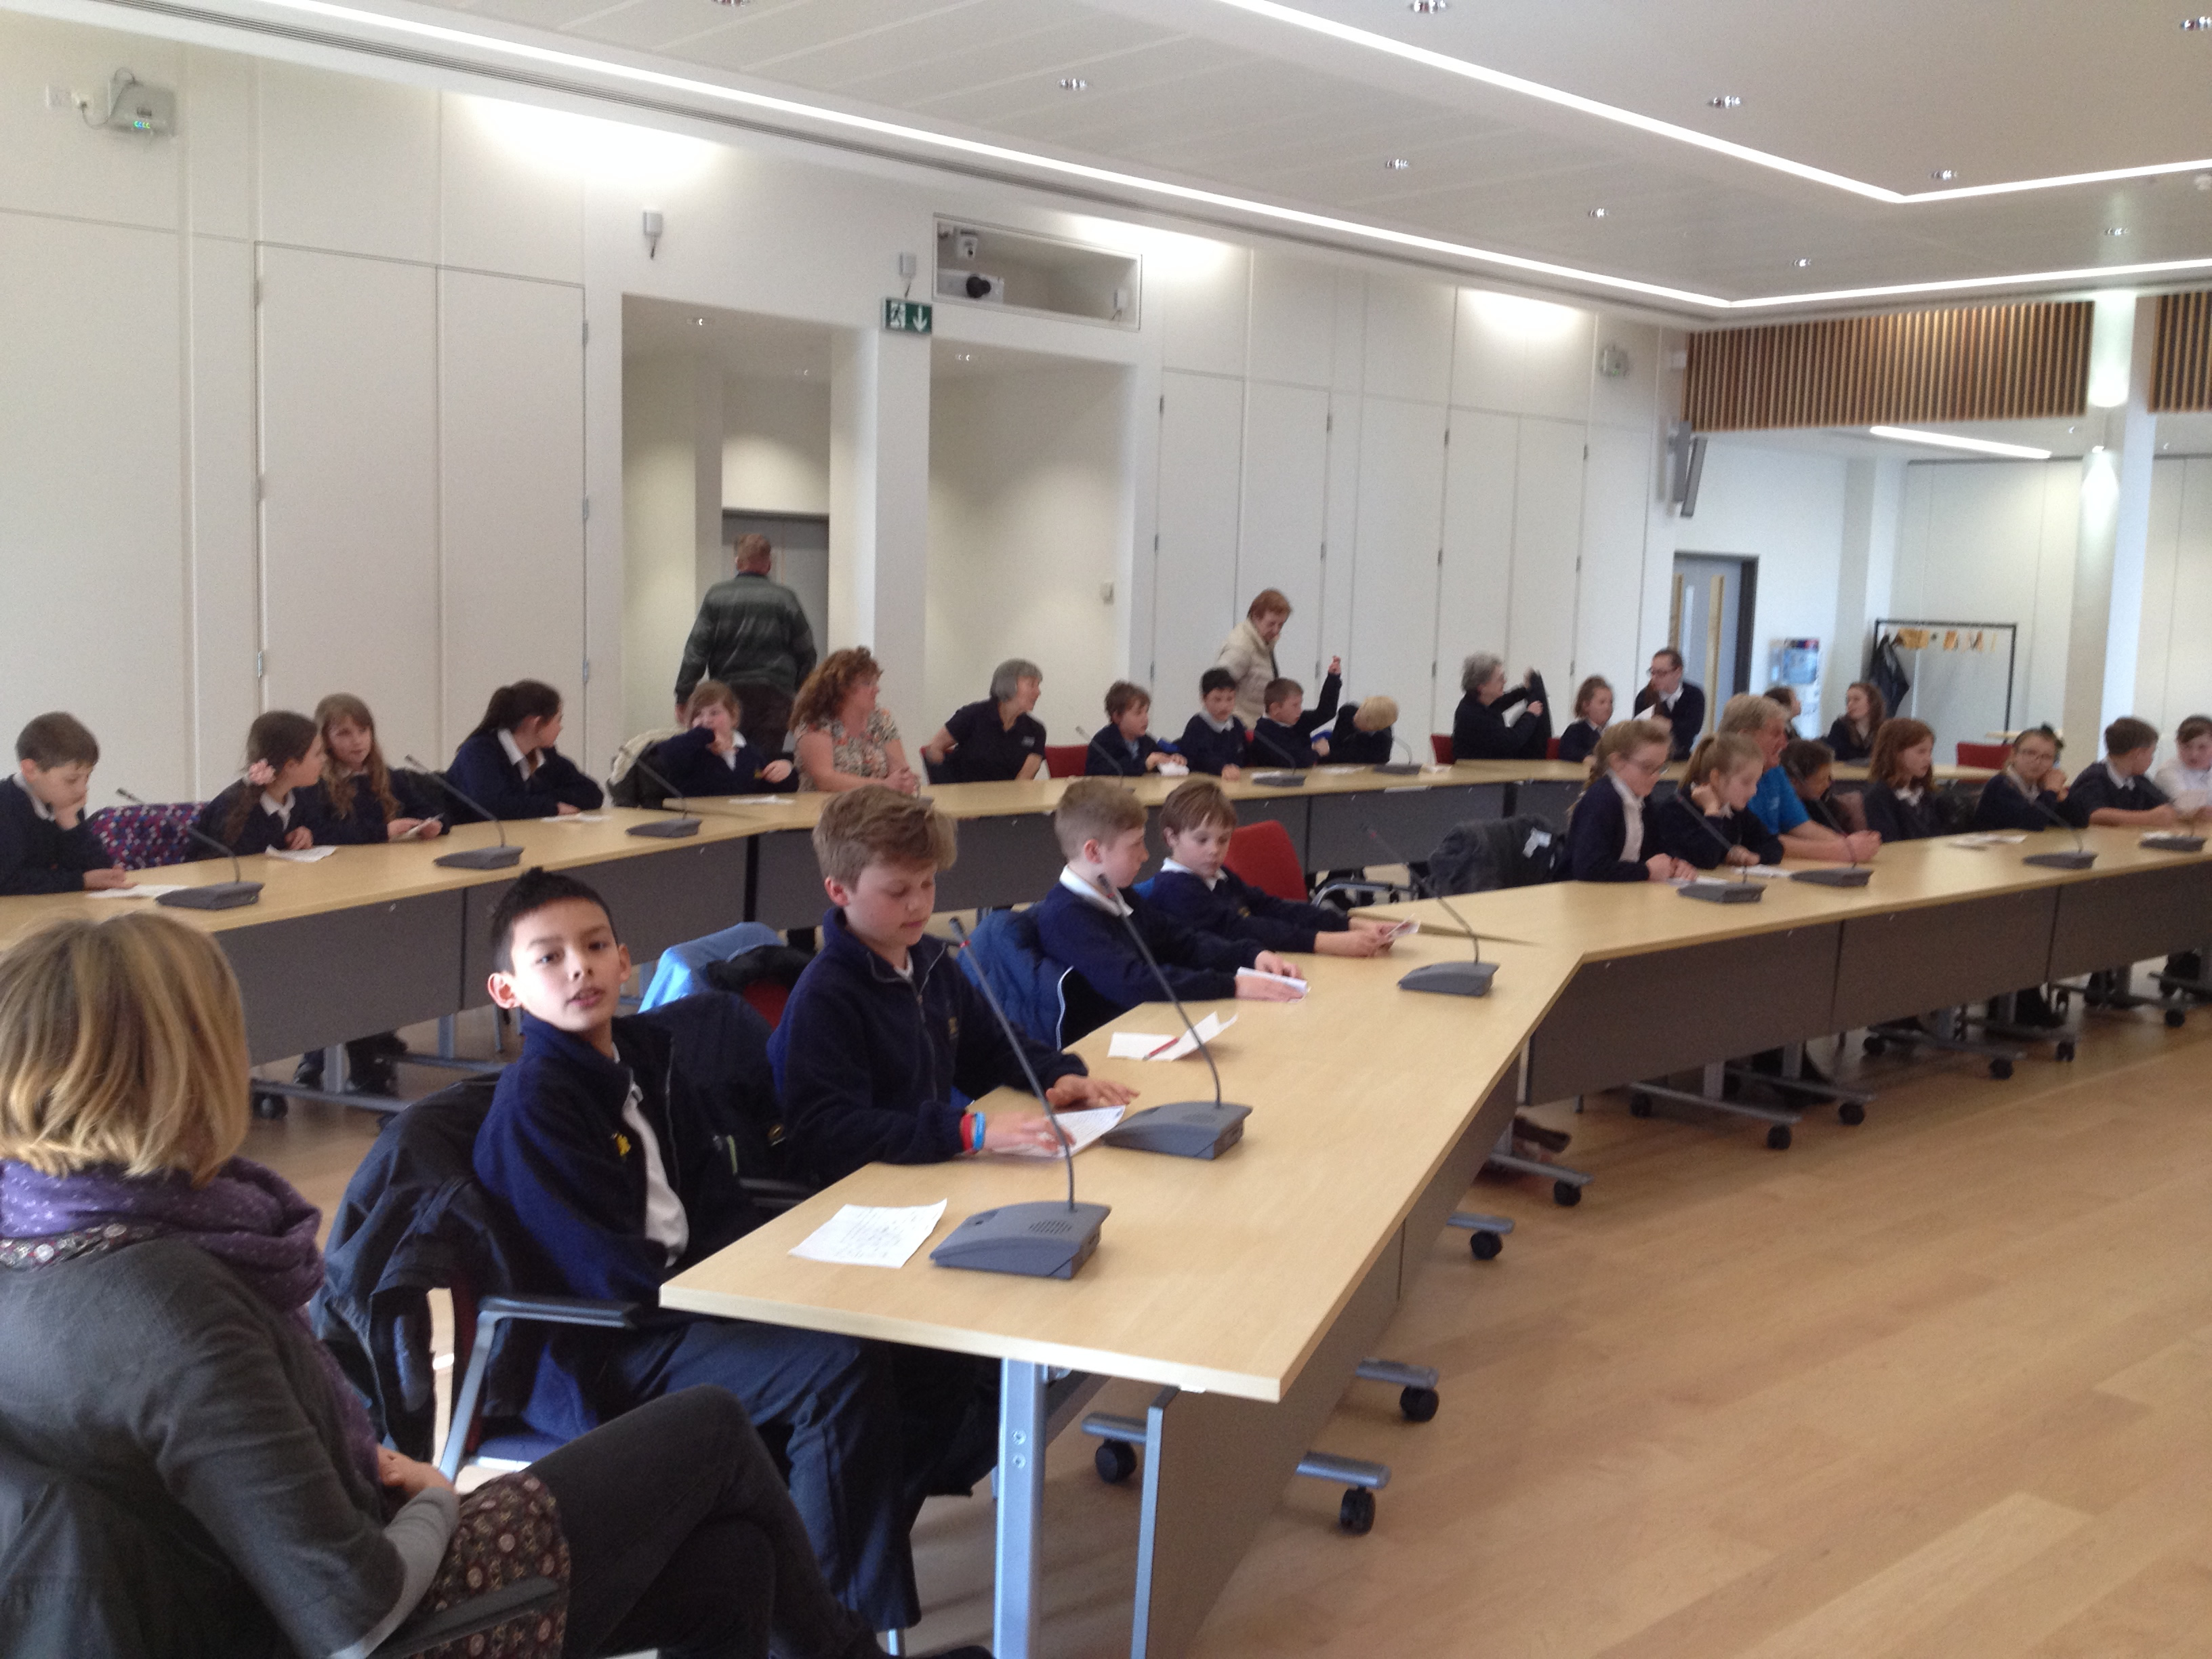 School Children discussing green issues in Chichester Council Chamber